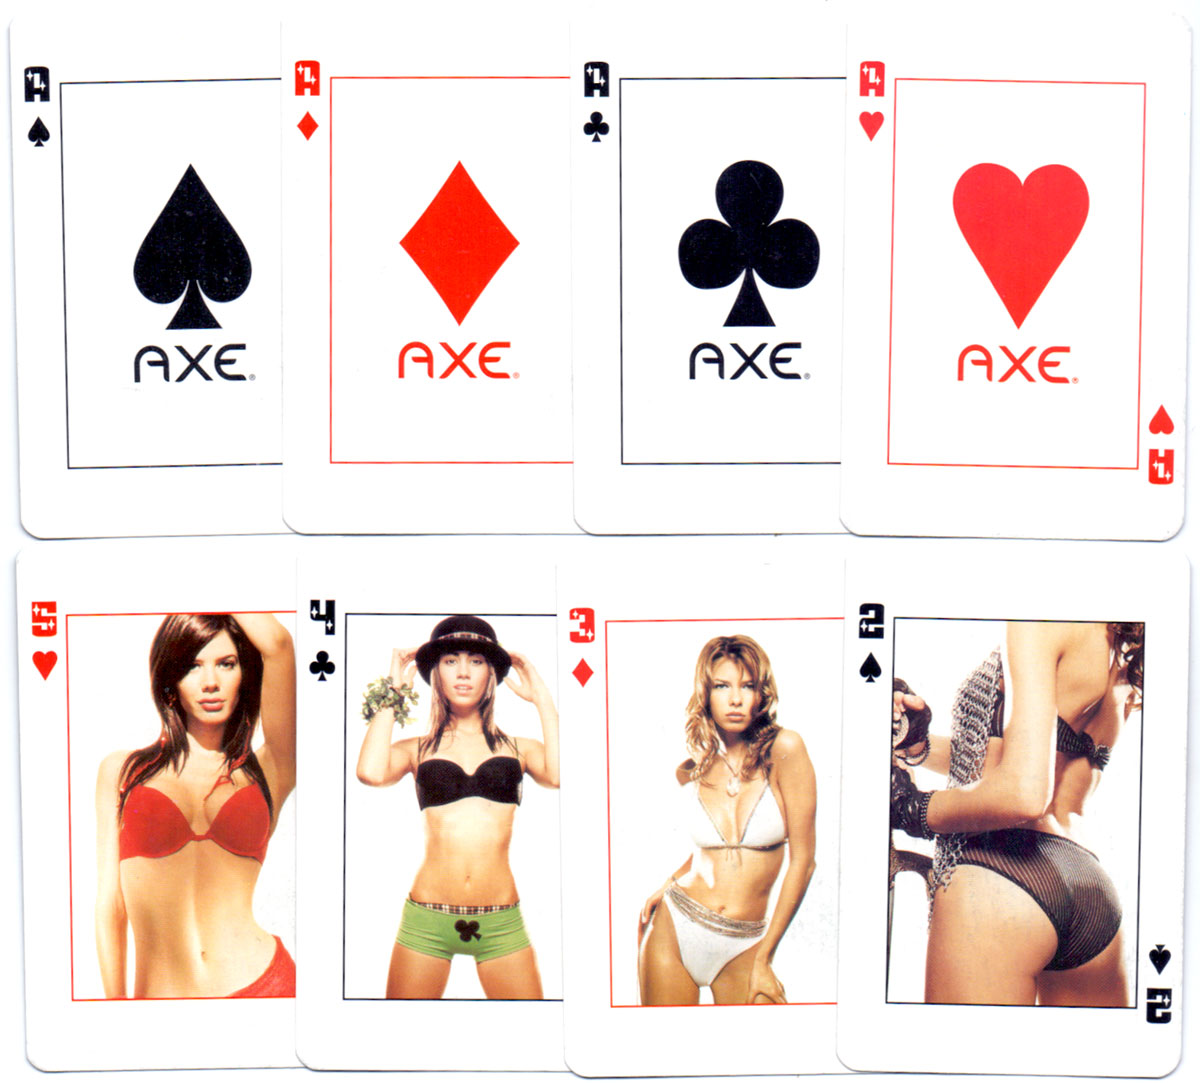 Axe Deodorant Playing Cards by Zecat, Argentina, c.2004